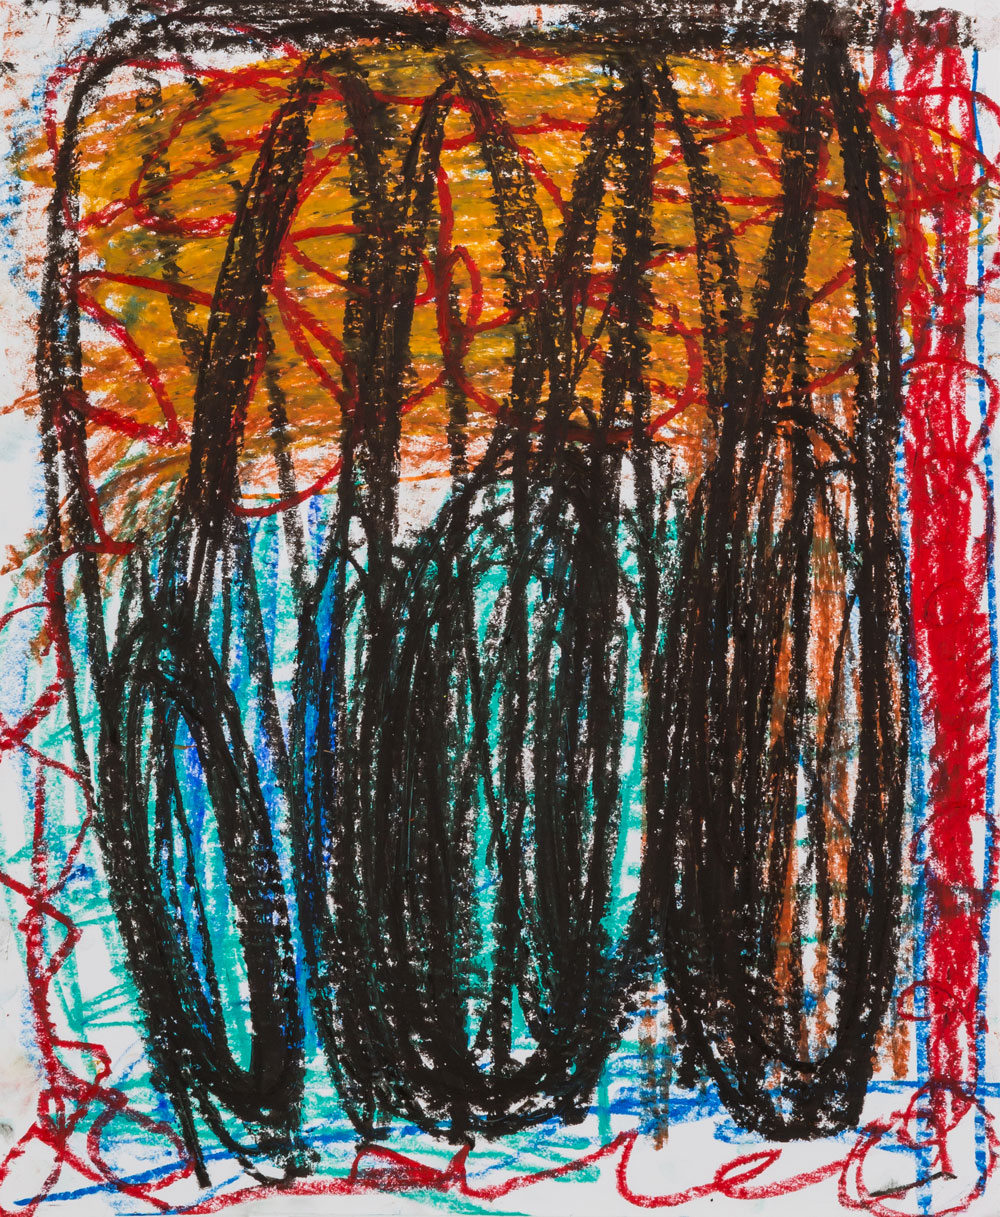 Three Kings II  , oil pastel on paper, 17x14 in. ©Denise Gale 2016